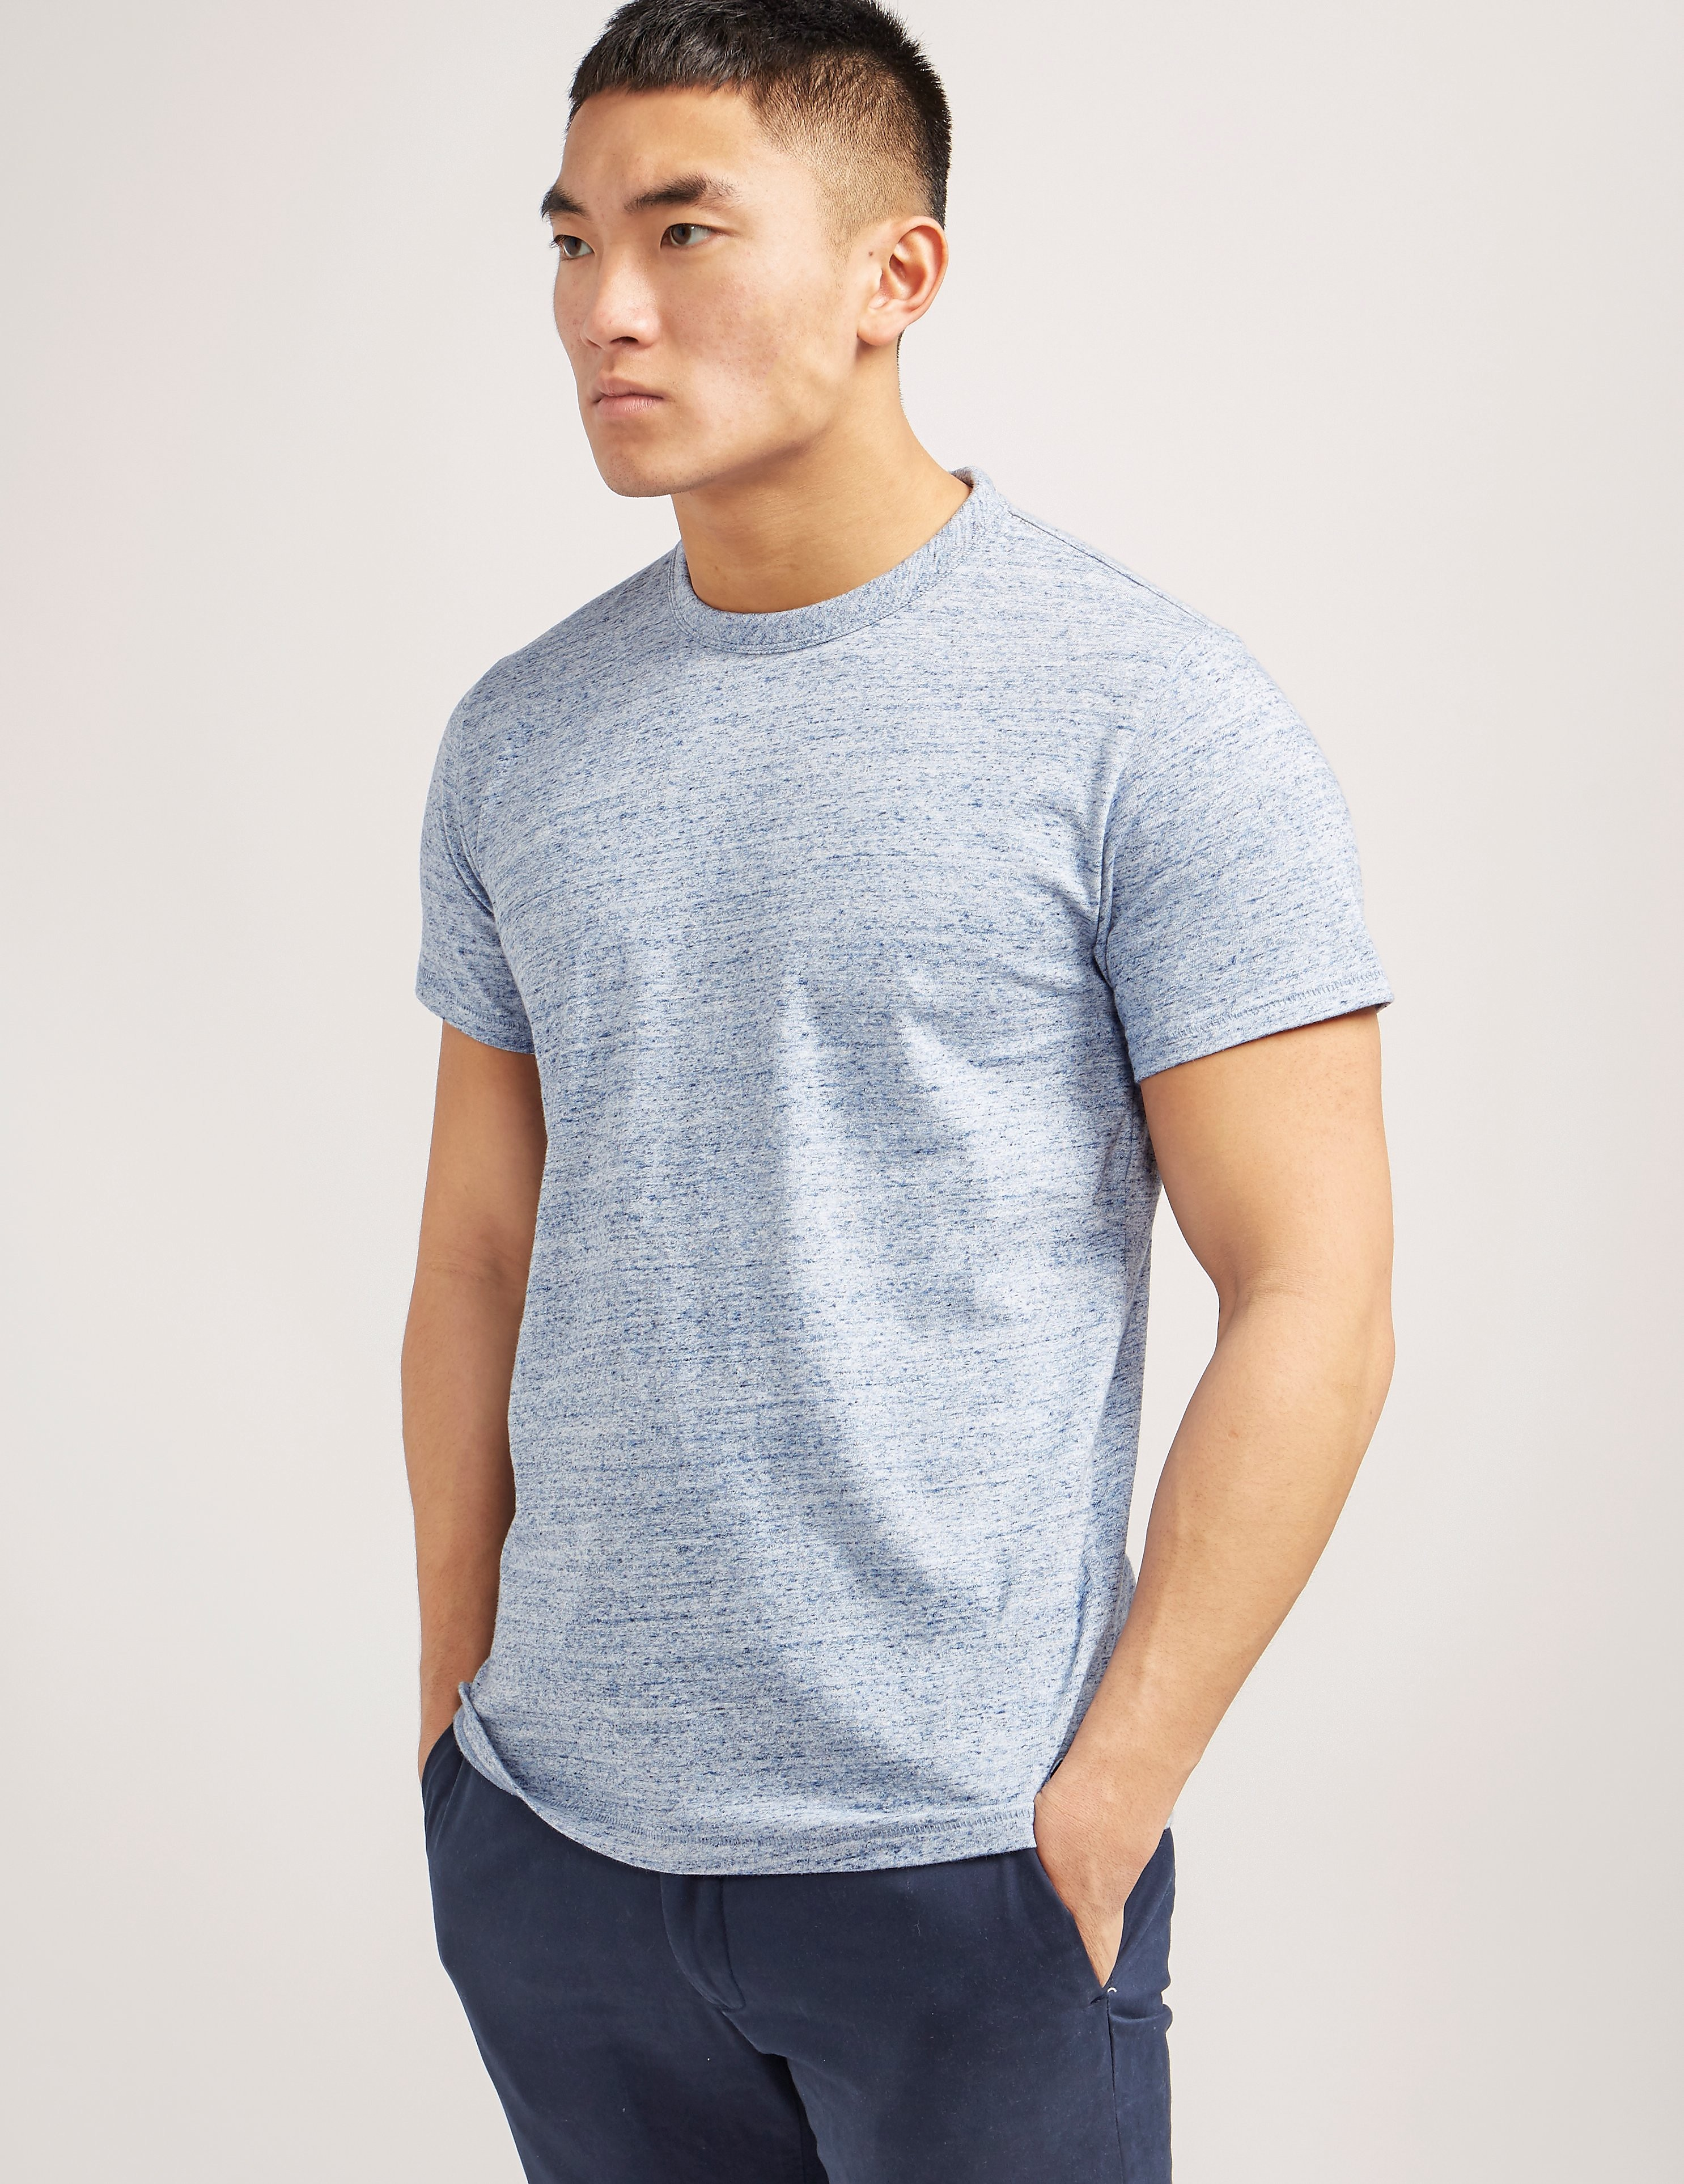 Rag & Bone James Short Sleeve T-Shirt